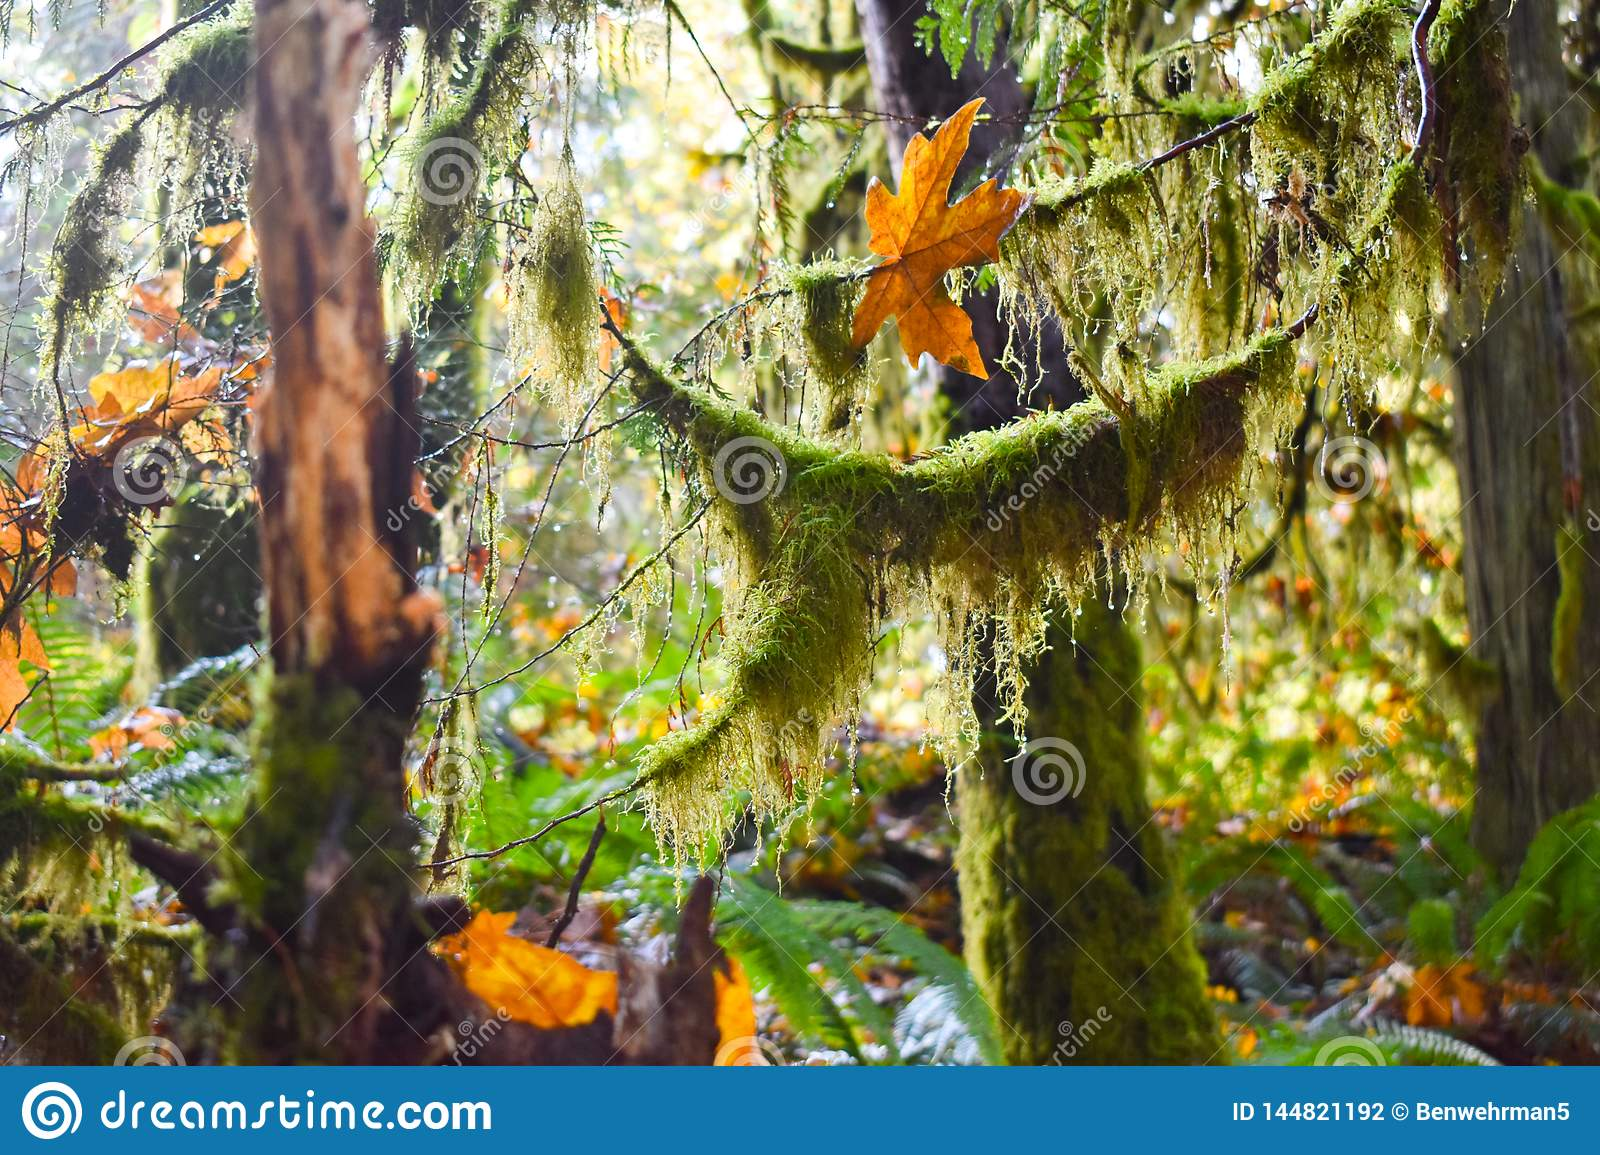 Mossy Trees in the Rainforest